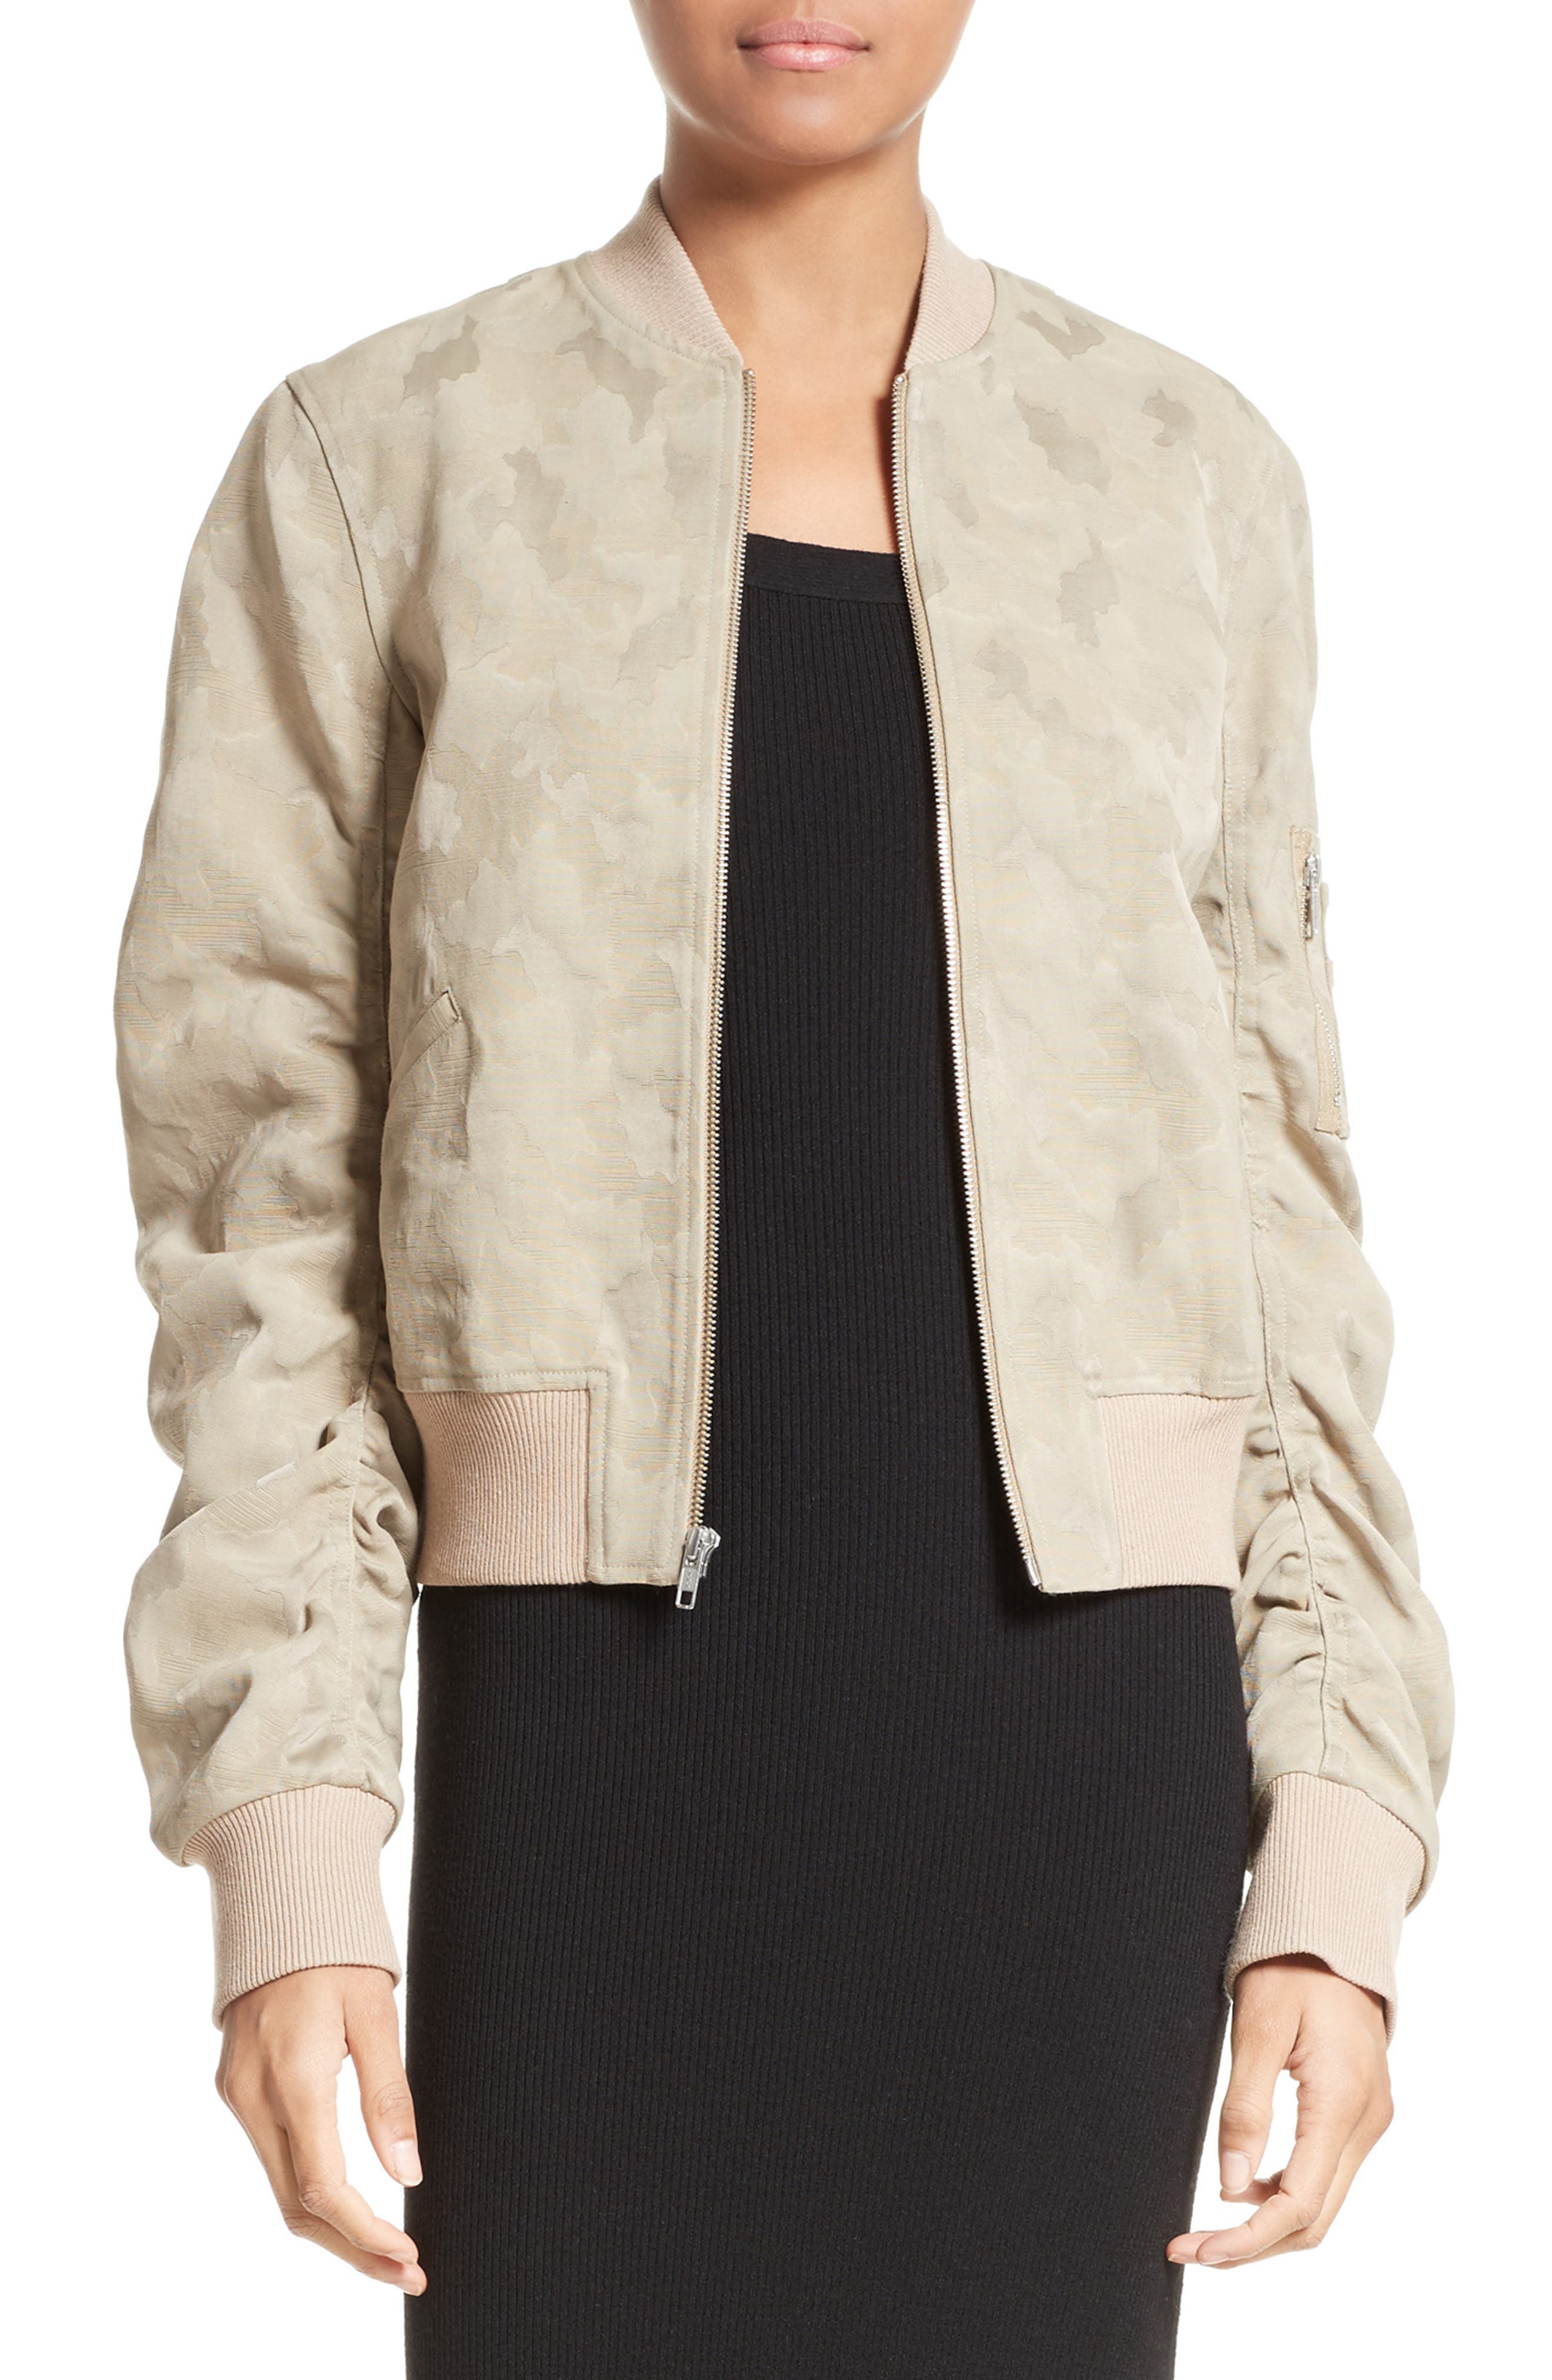 Andrew Brocade Bomber Jacket,                         Main,                         color, 260